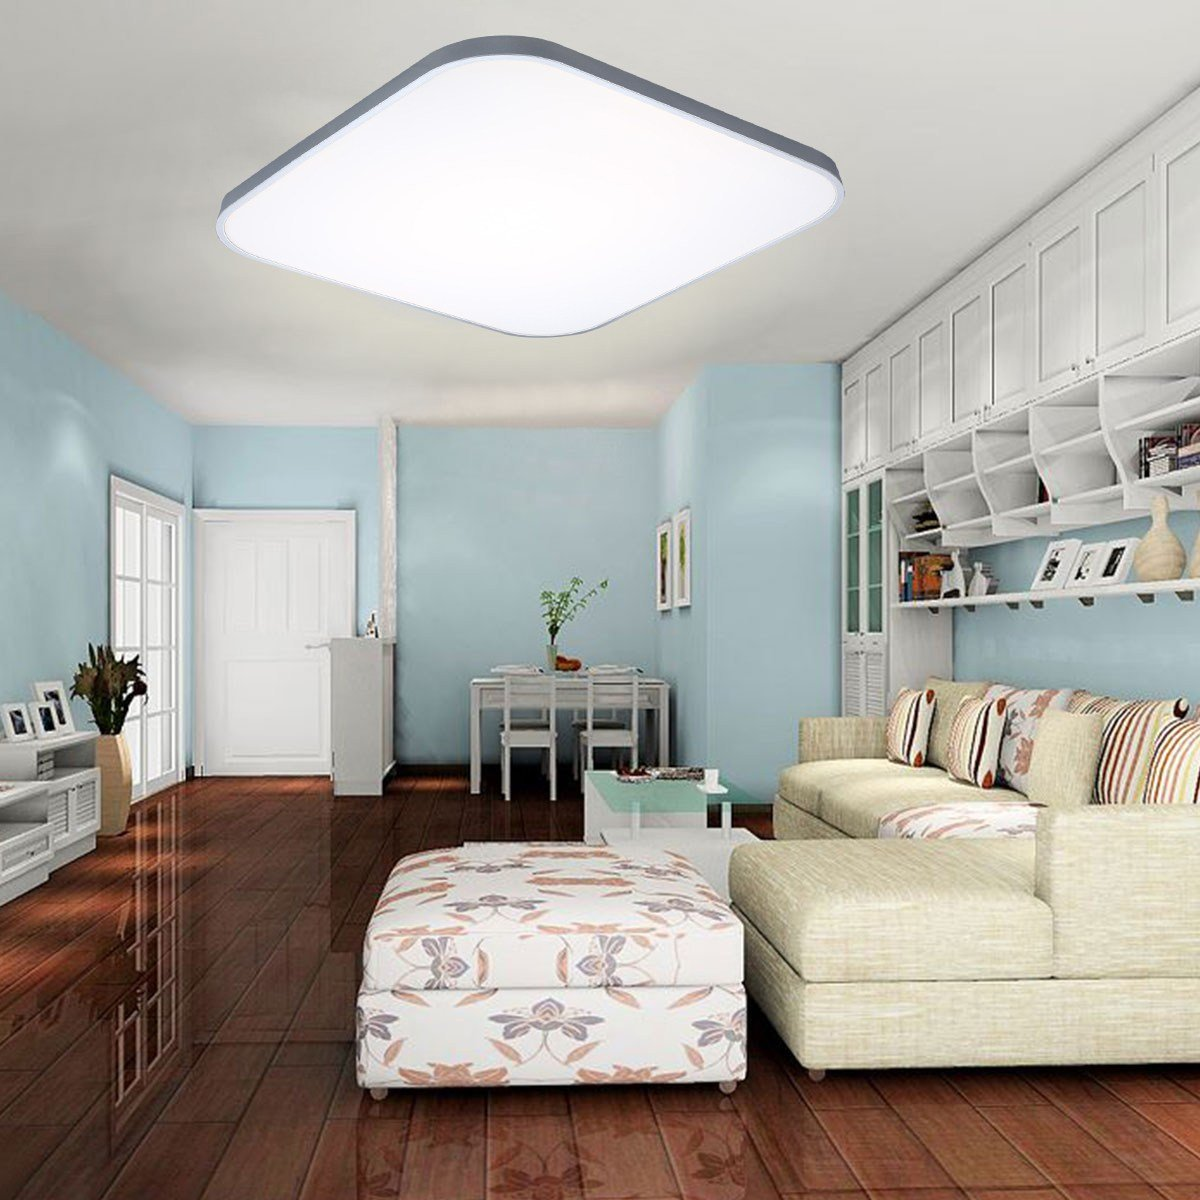 Best Ultra Thin 36W Led Ceiling Light Kitchen Bedroom Lamp With Pictures